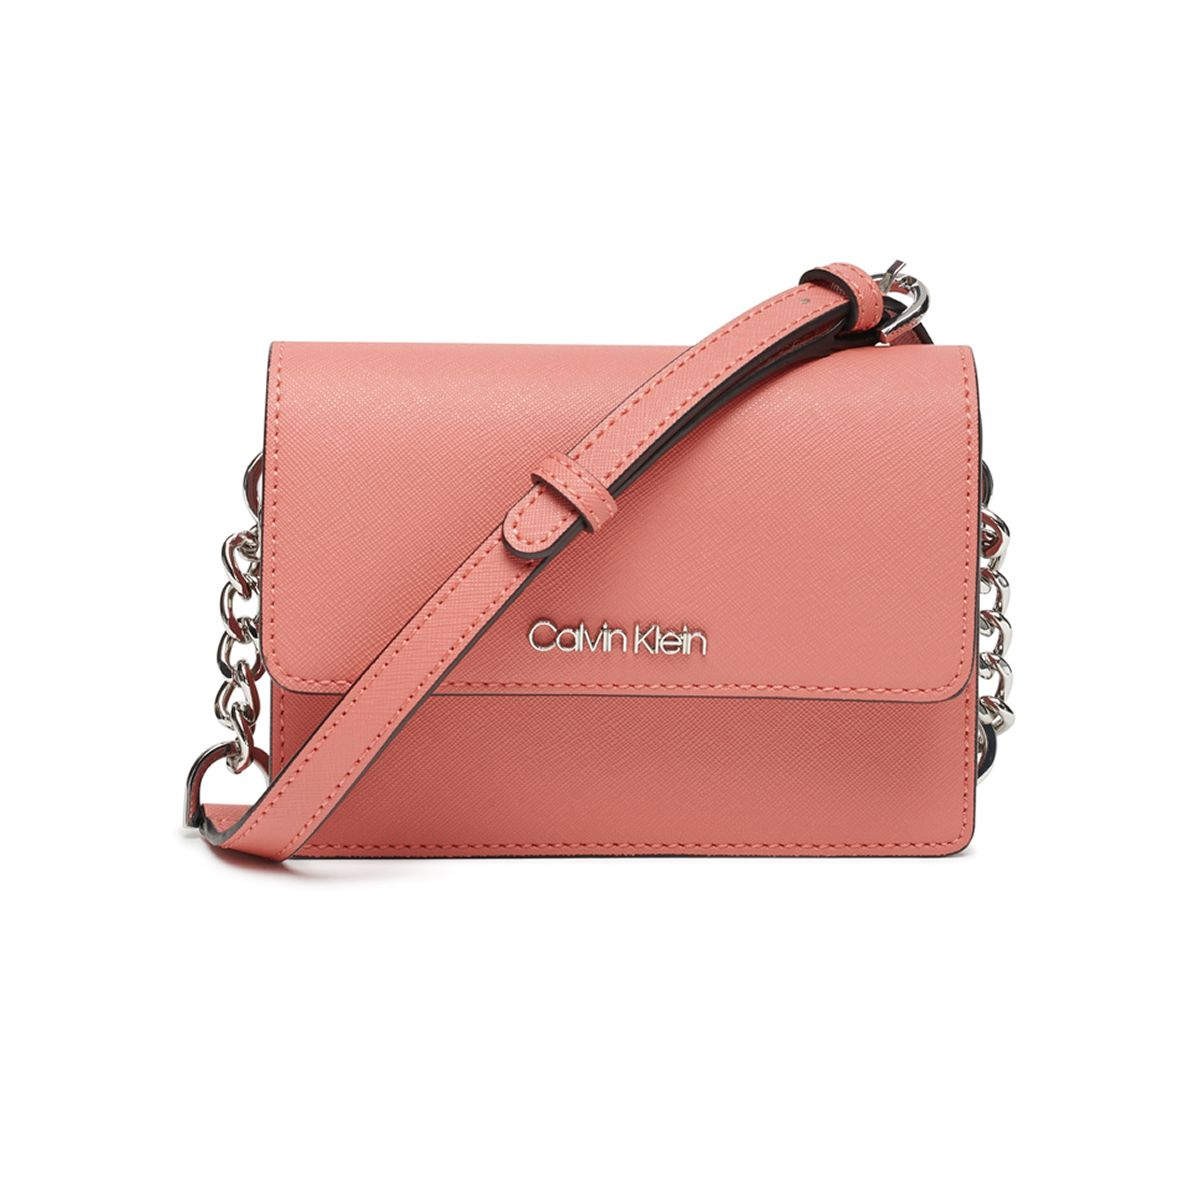 ae6351a7bbd Deal of the Day Calvin Klein Handbags & Bags - Macy's